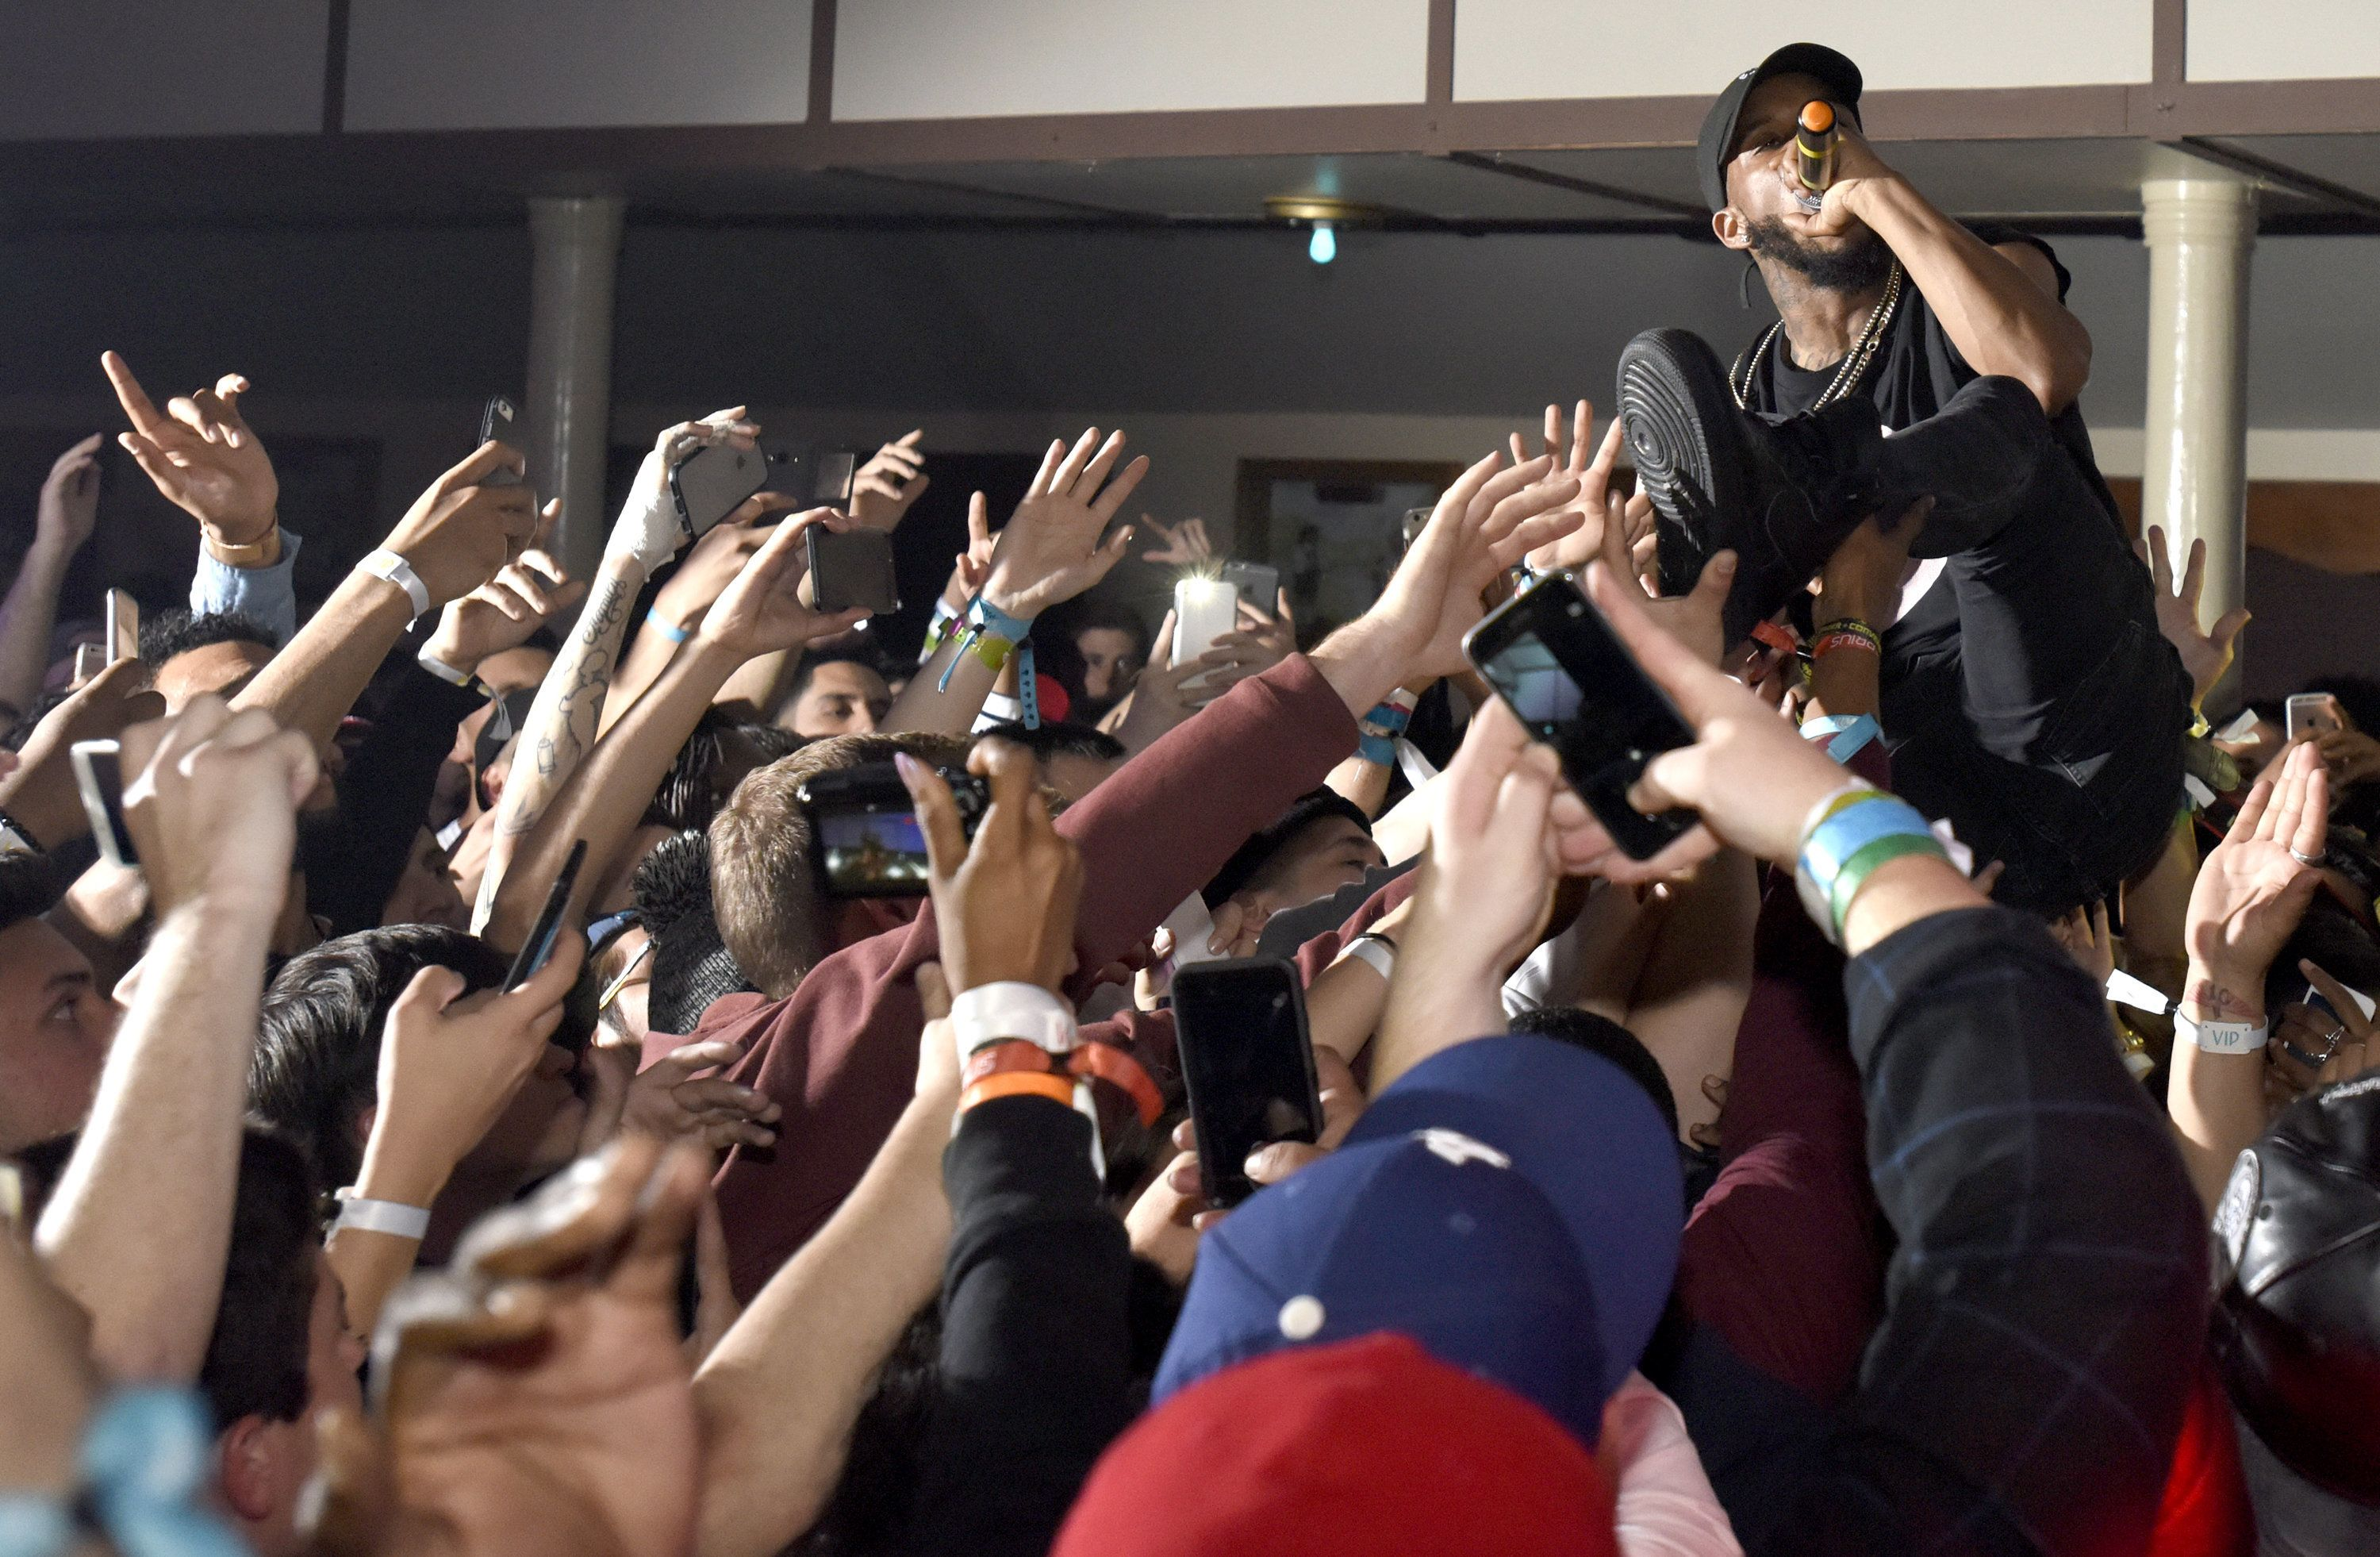 AUSTIN, TX - MARCH 19:  Rapper Tory Lanez performs as the final artist at the closing night of The Illmore SXSW 2016 after party at Saengerrunde Hall & Scholz Garden on March 19, 2016 in Austin, Texas.  (Photo by Tim Mosenfelder/Getty Images)